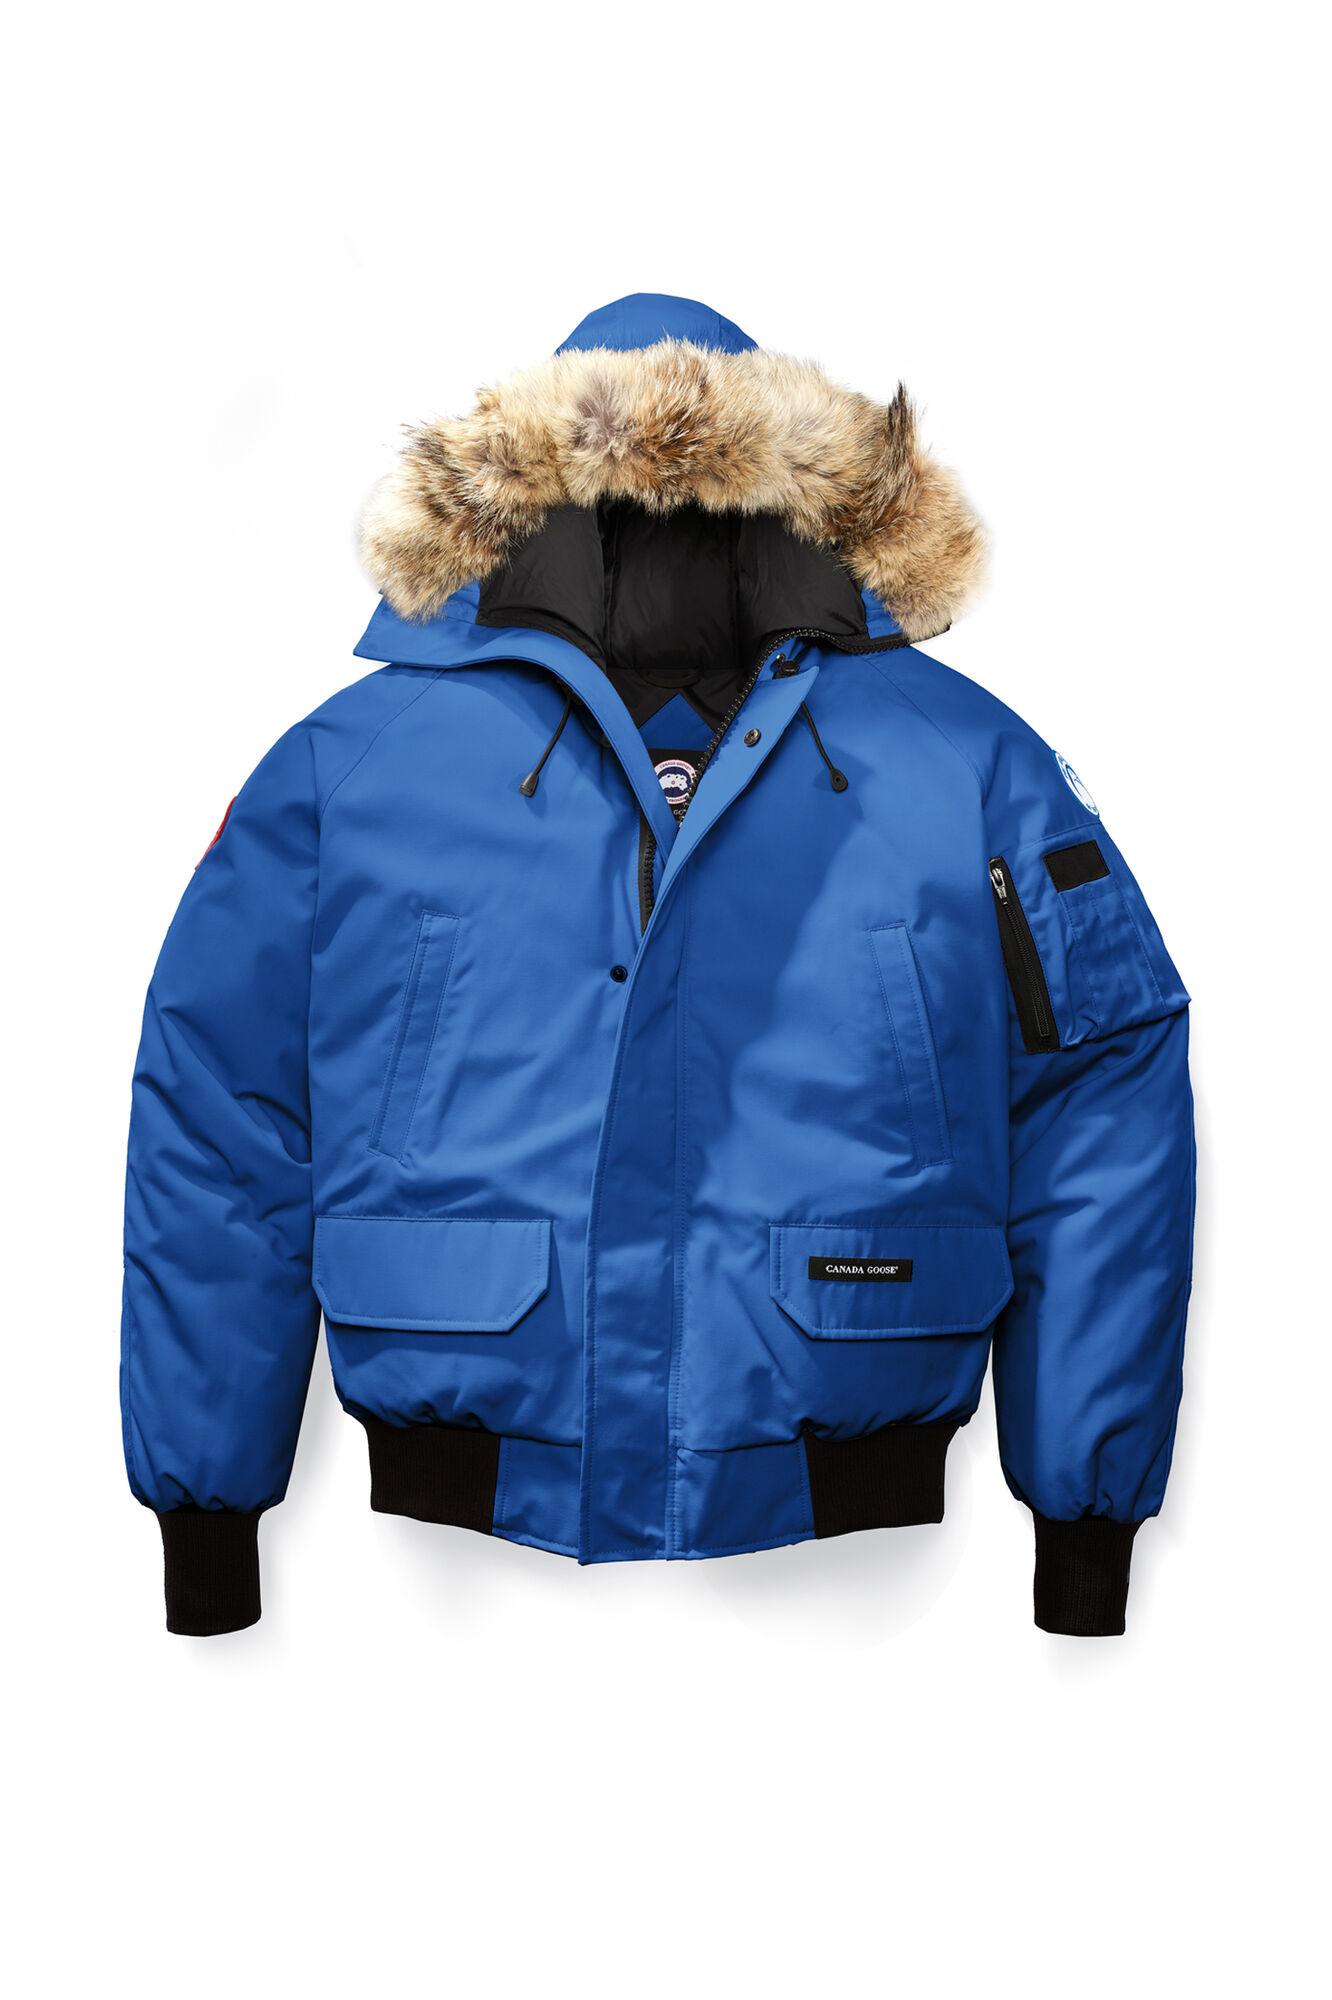 Canada Goose womens replica official - Mens Extreme Weather Outerwear | Canada Goose?